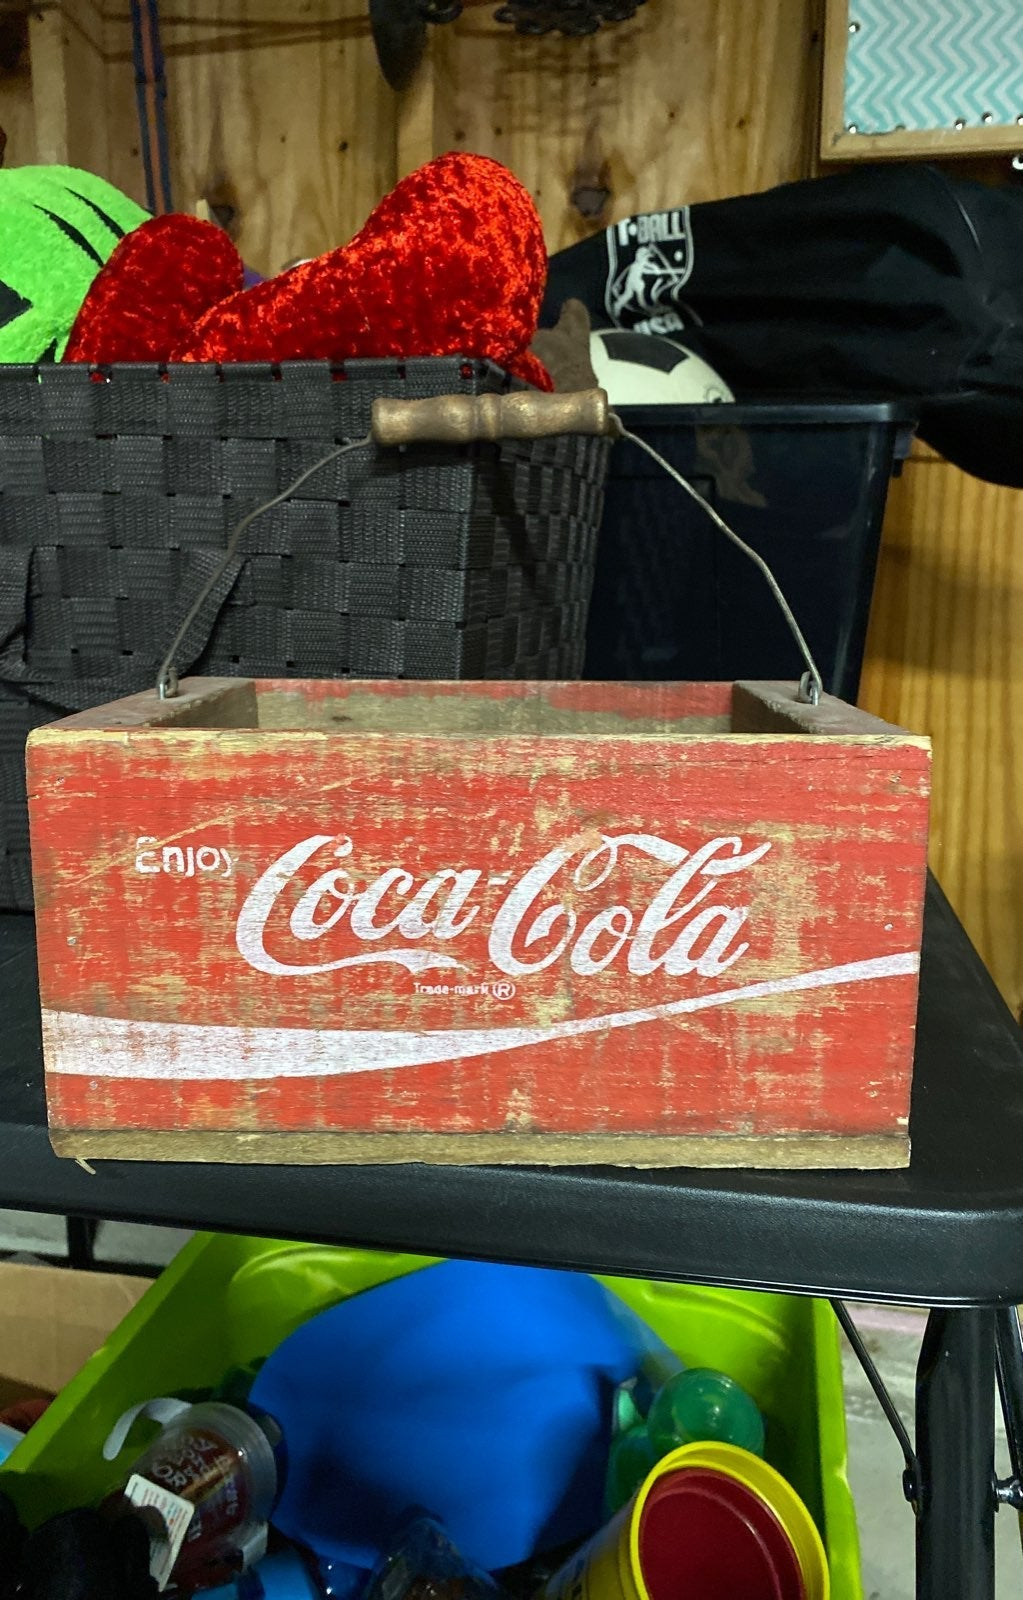 Cocacola wooden soda crate